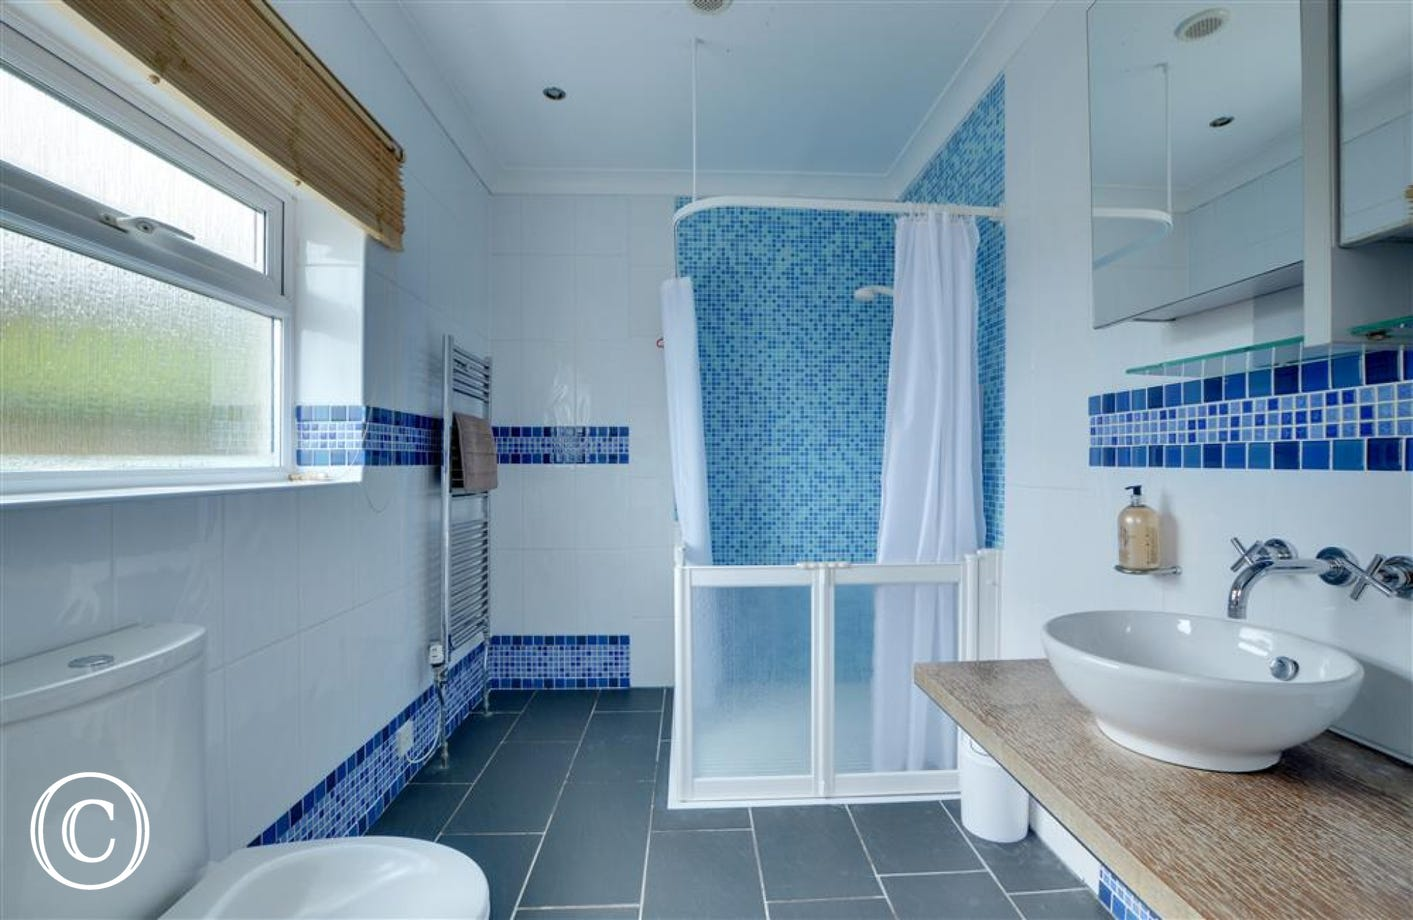 Ensuite shower room with level access shower unit, WC and basin, particularly suitable for less mobile guests